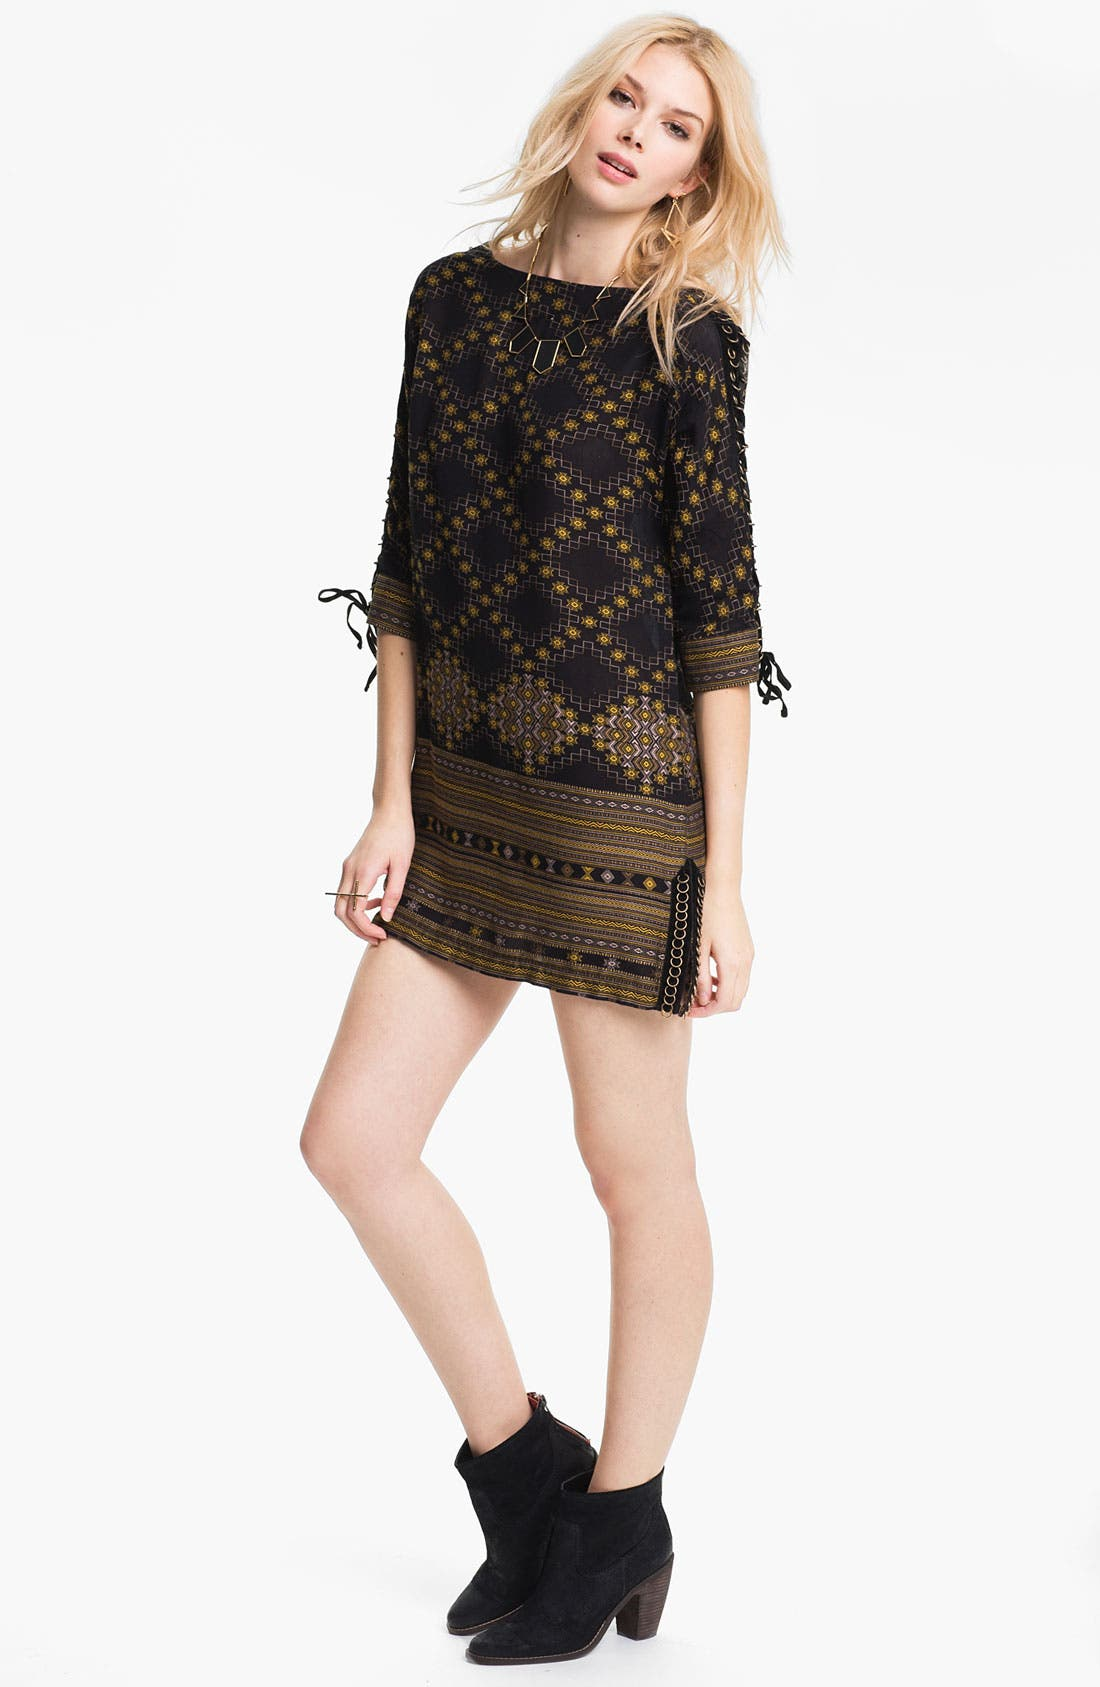 Alternate Image 1 Selected - Free People Dress & Accessories